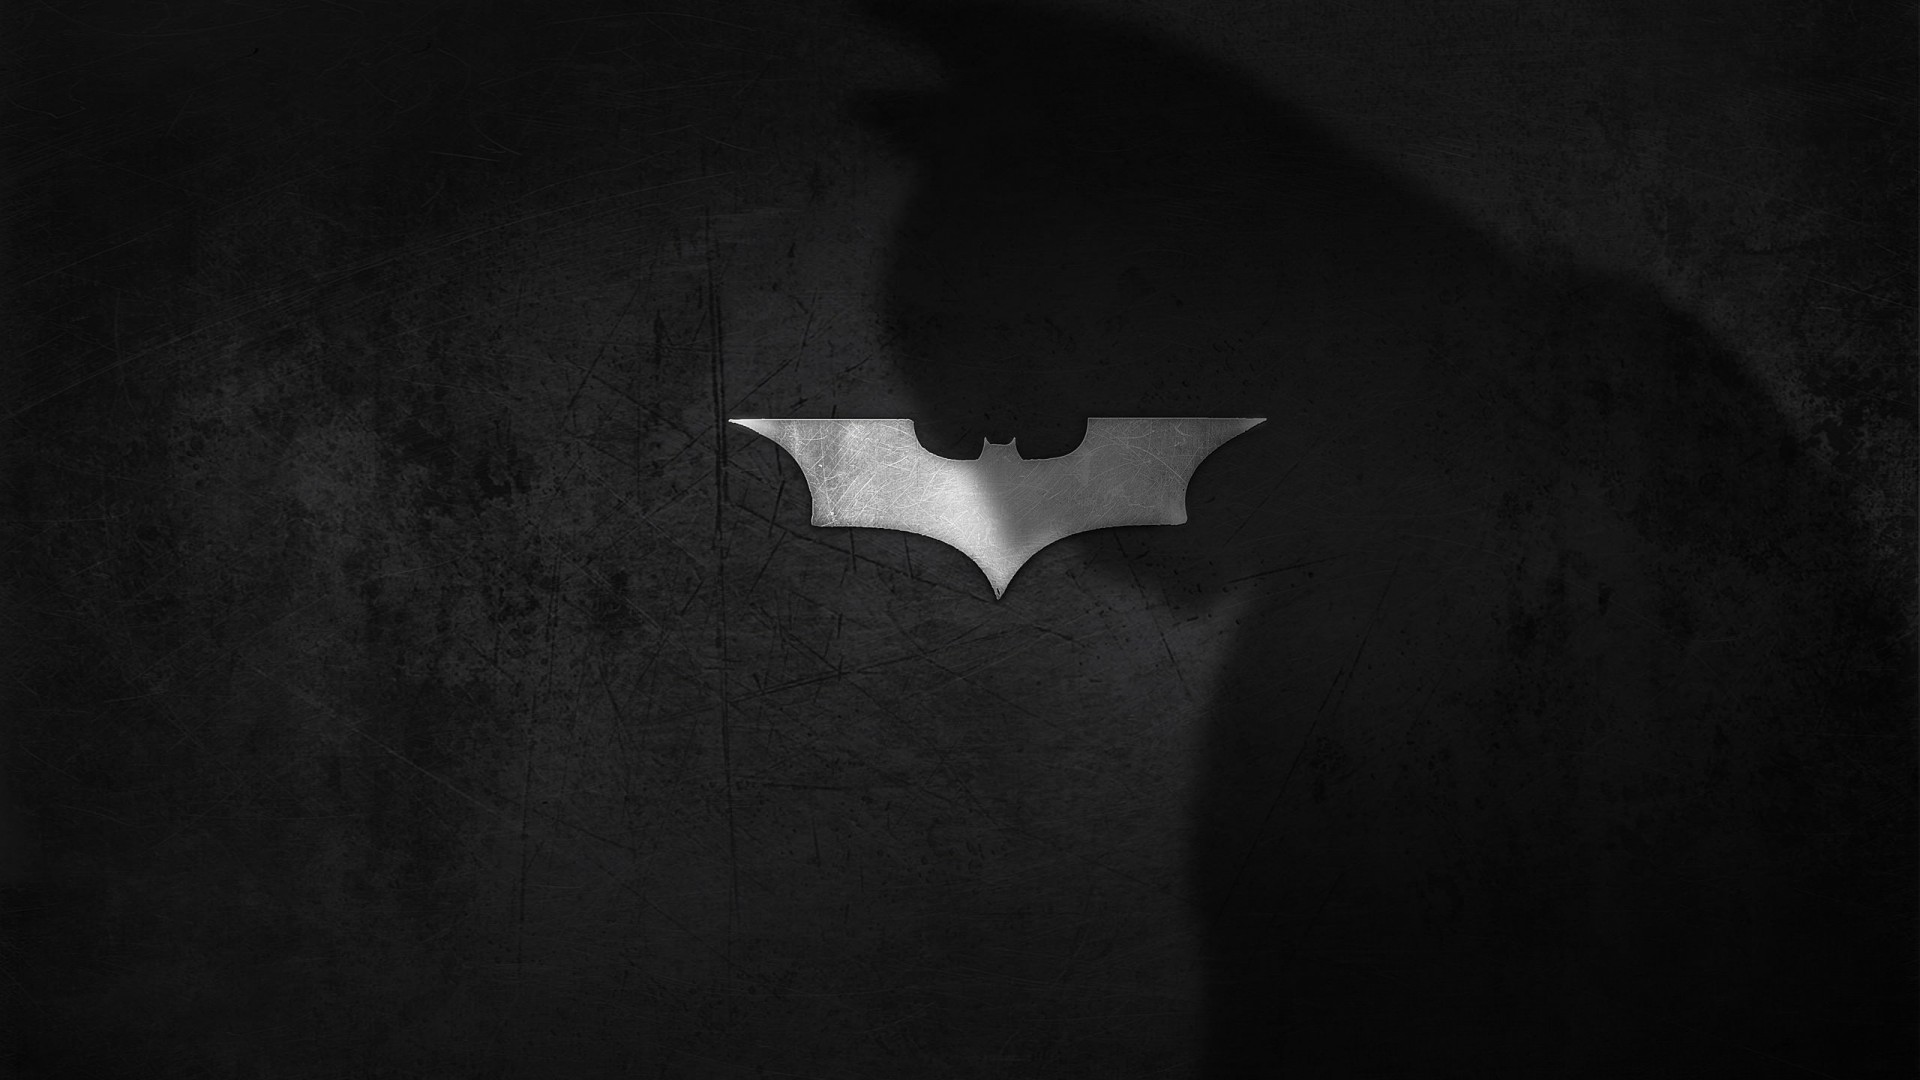 Batman: The Dark Knight Wallpaper for Desktop 1920x1080